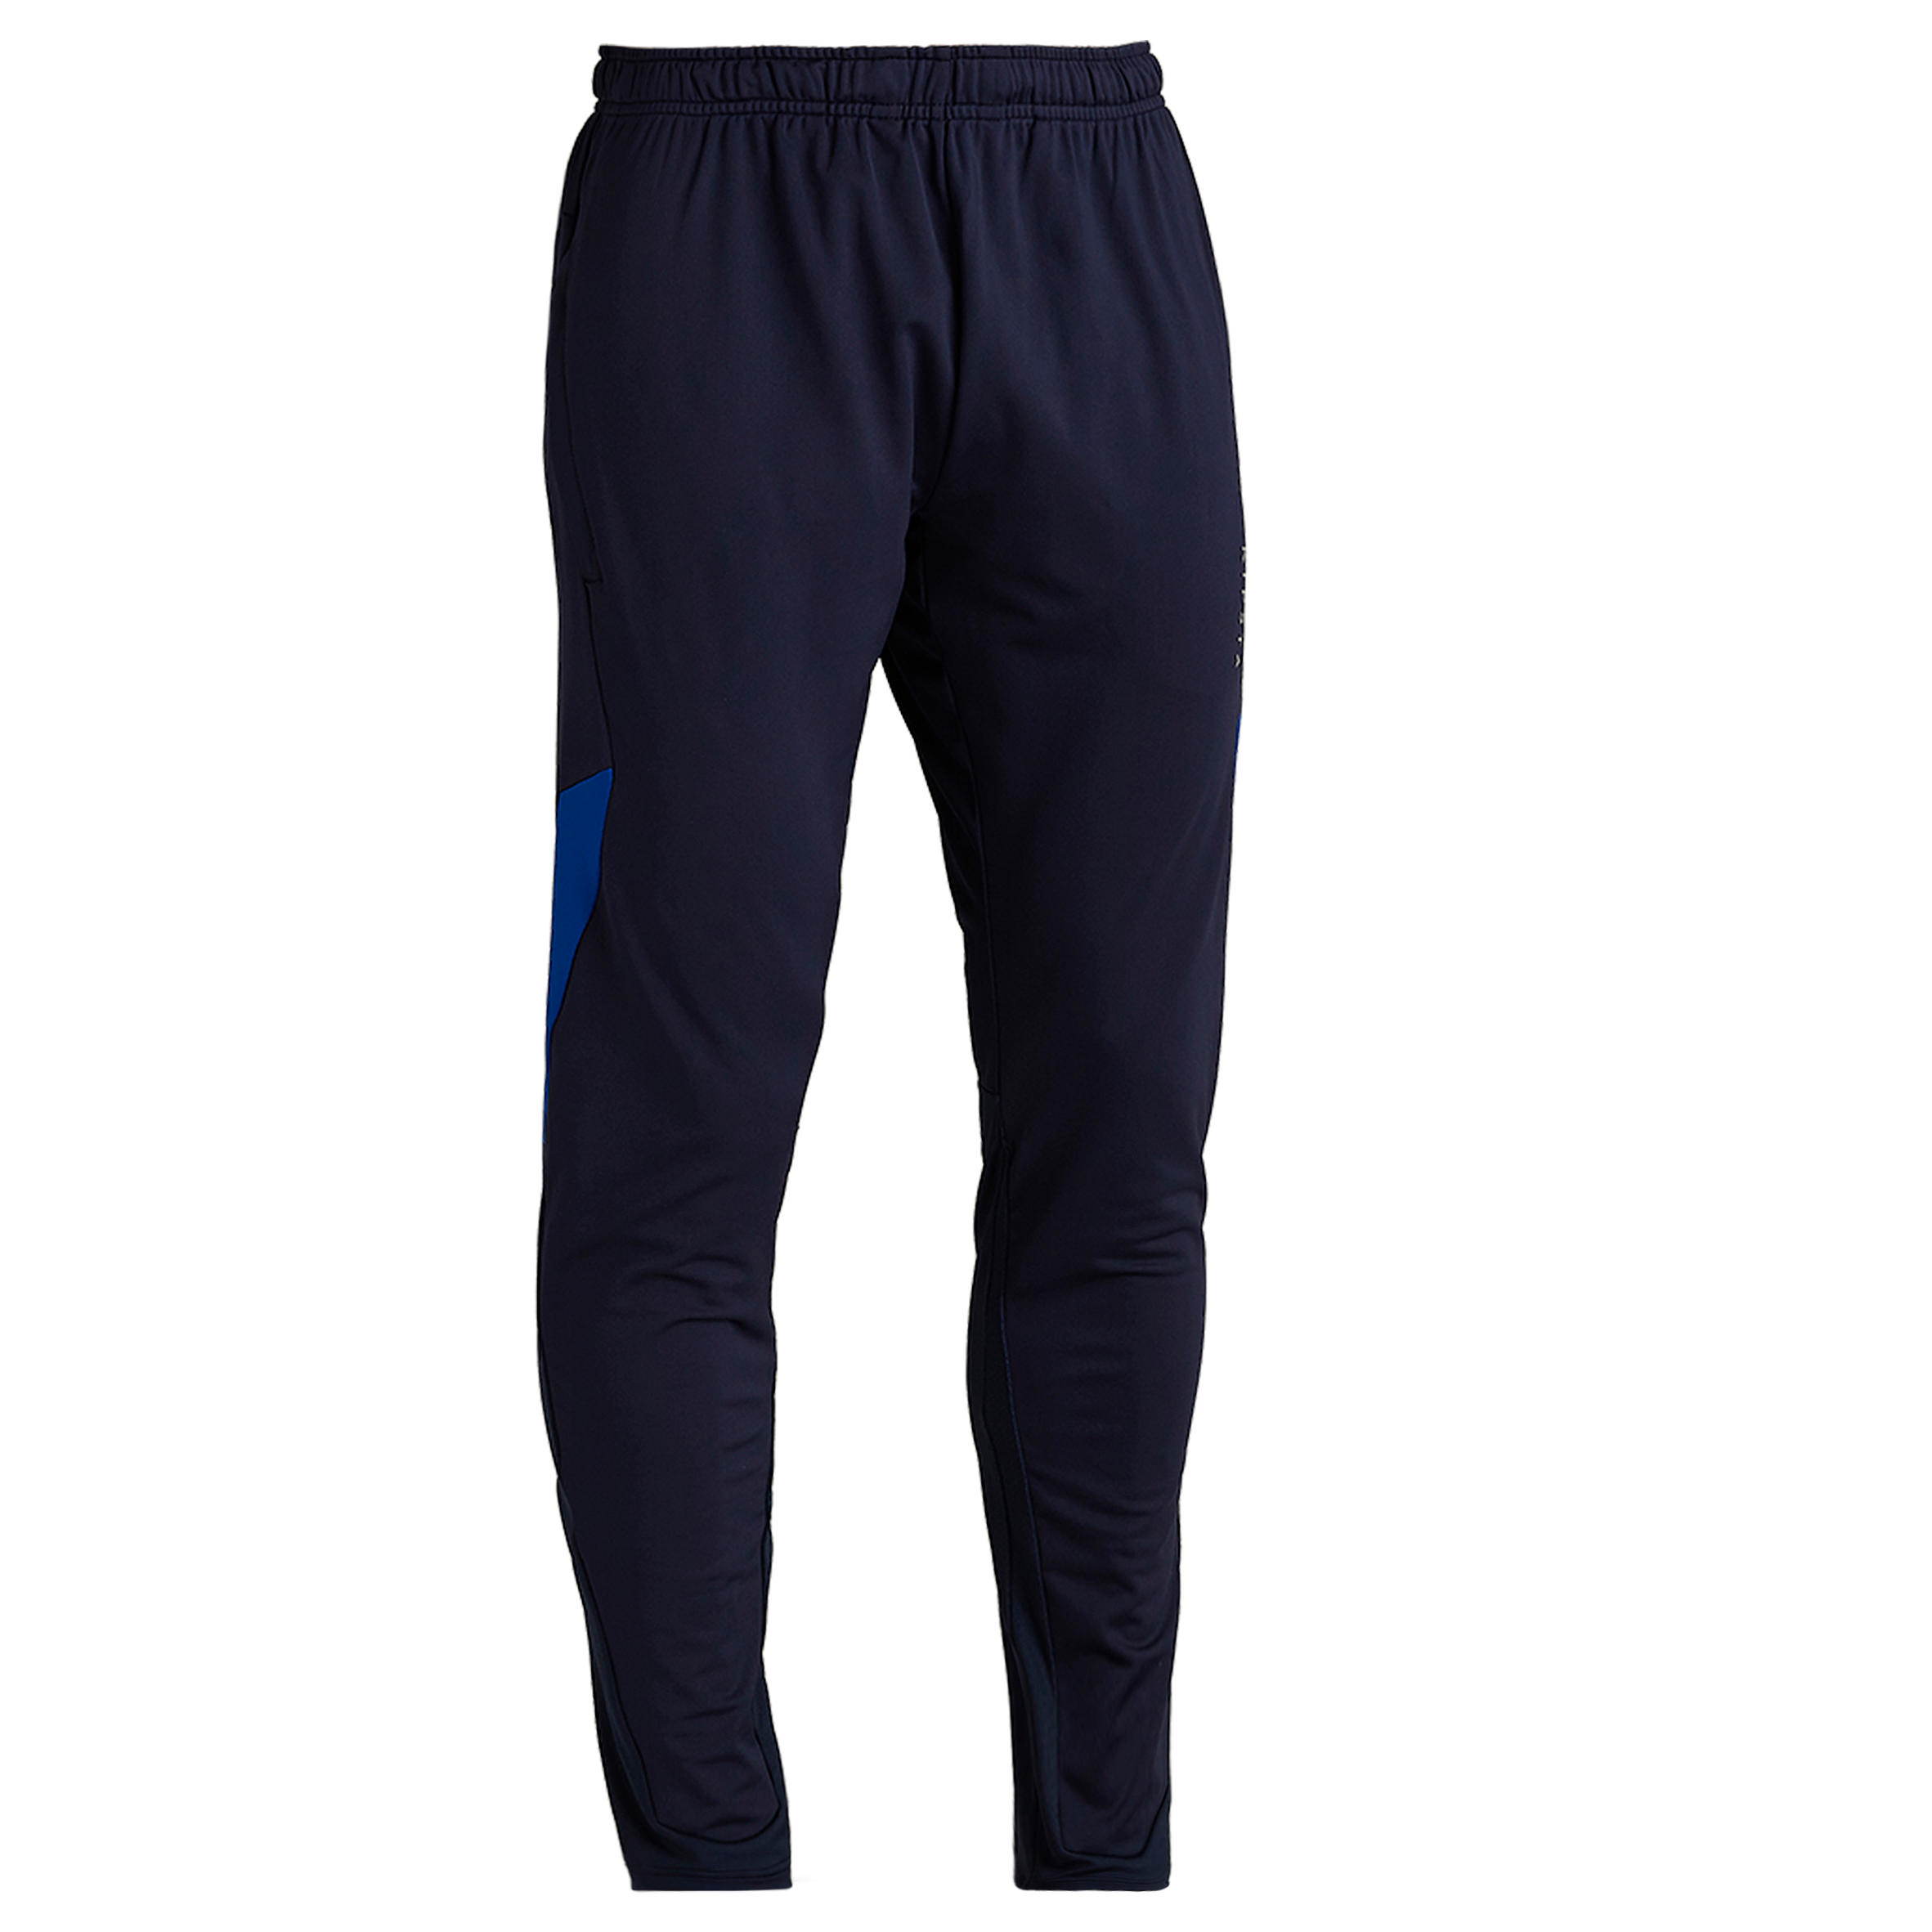 Pantalon Fotbal T500 Adulţi imagine